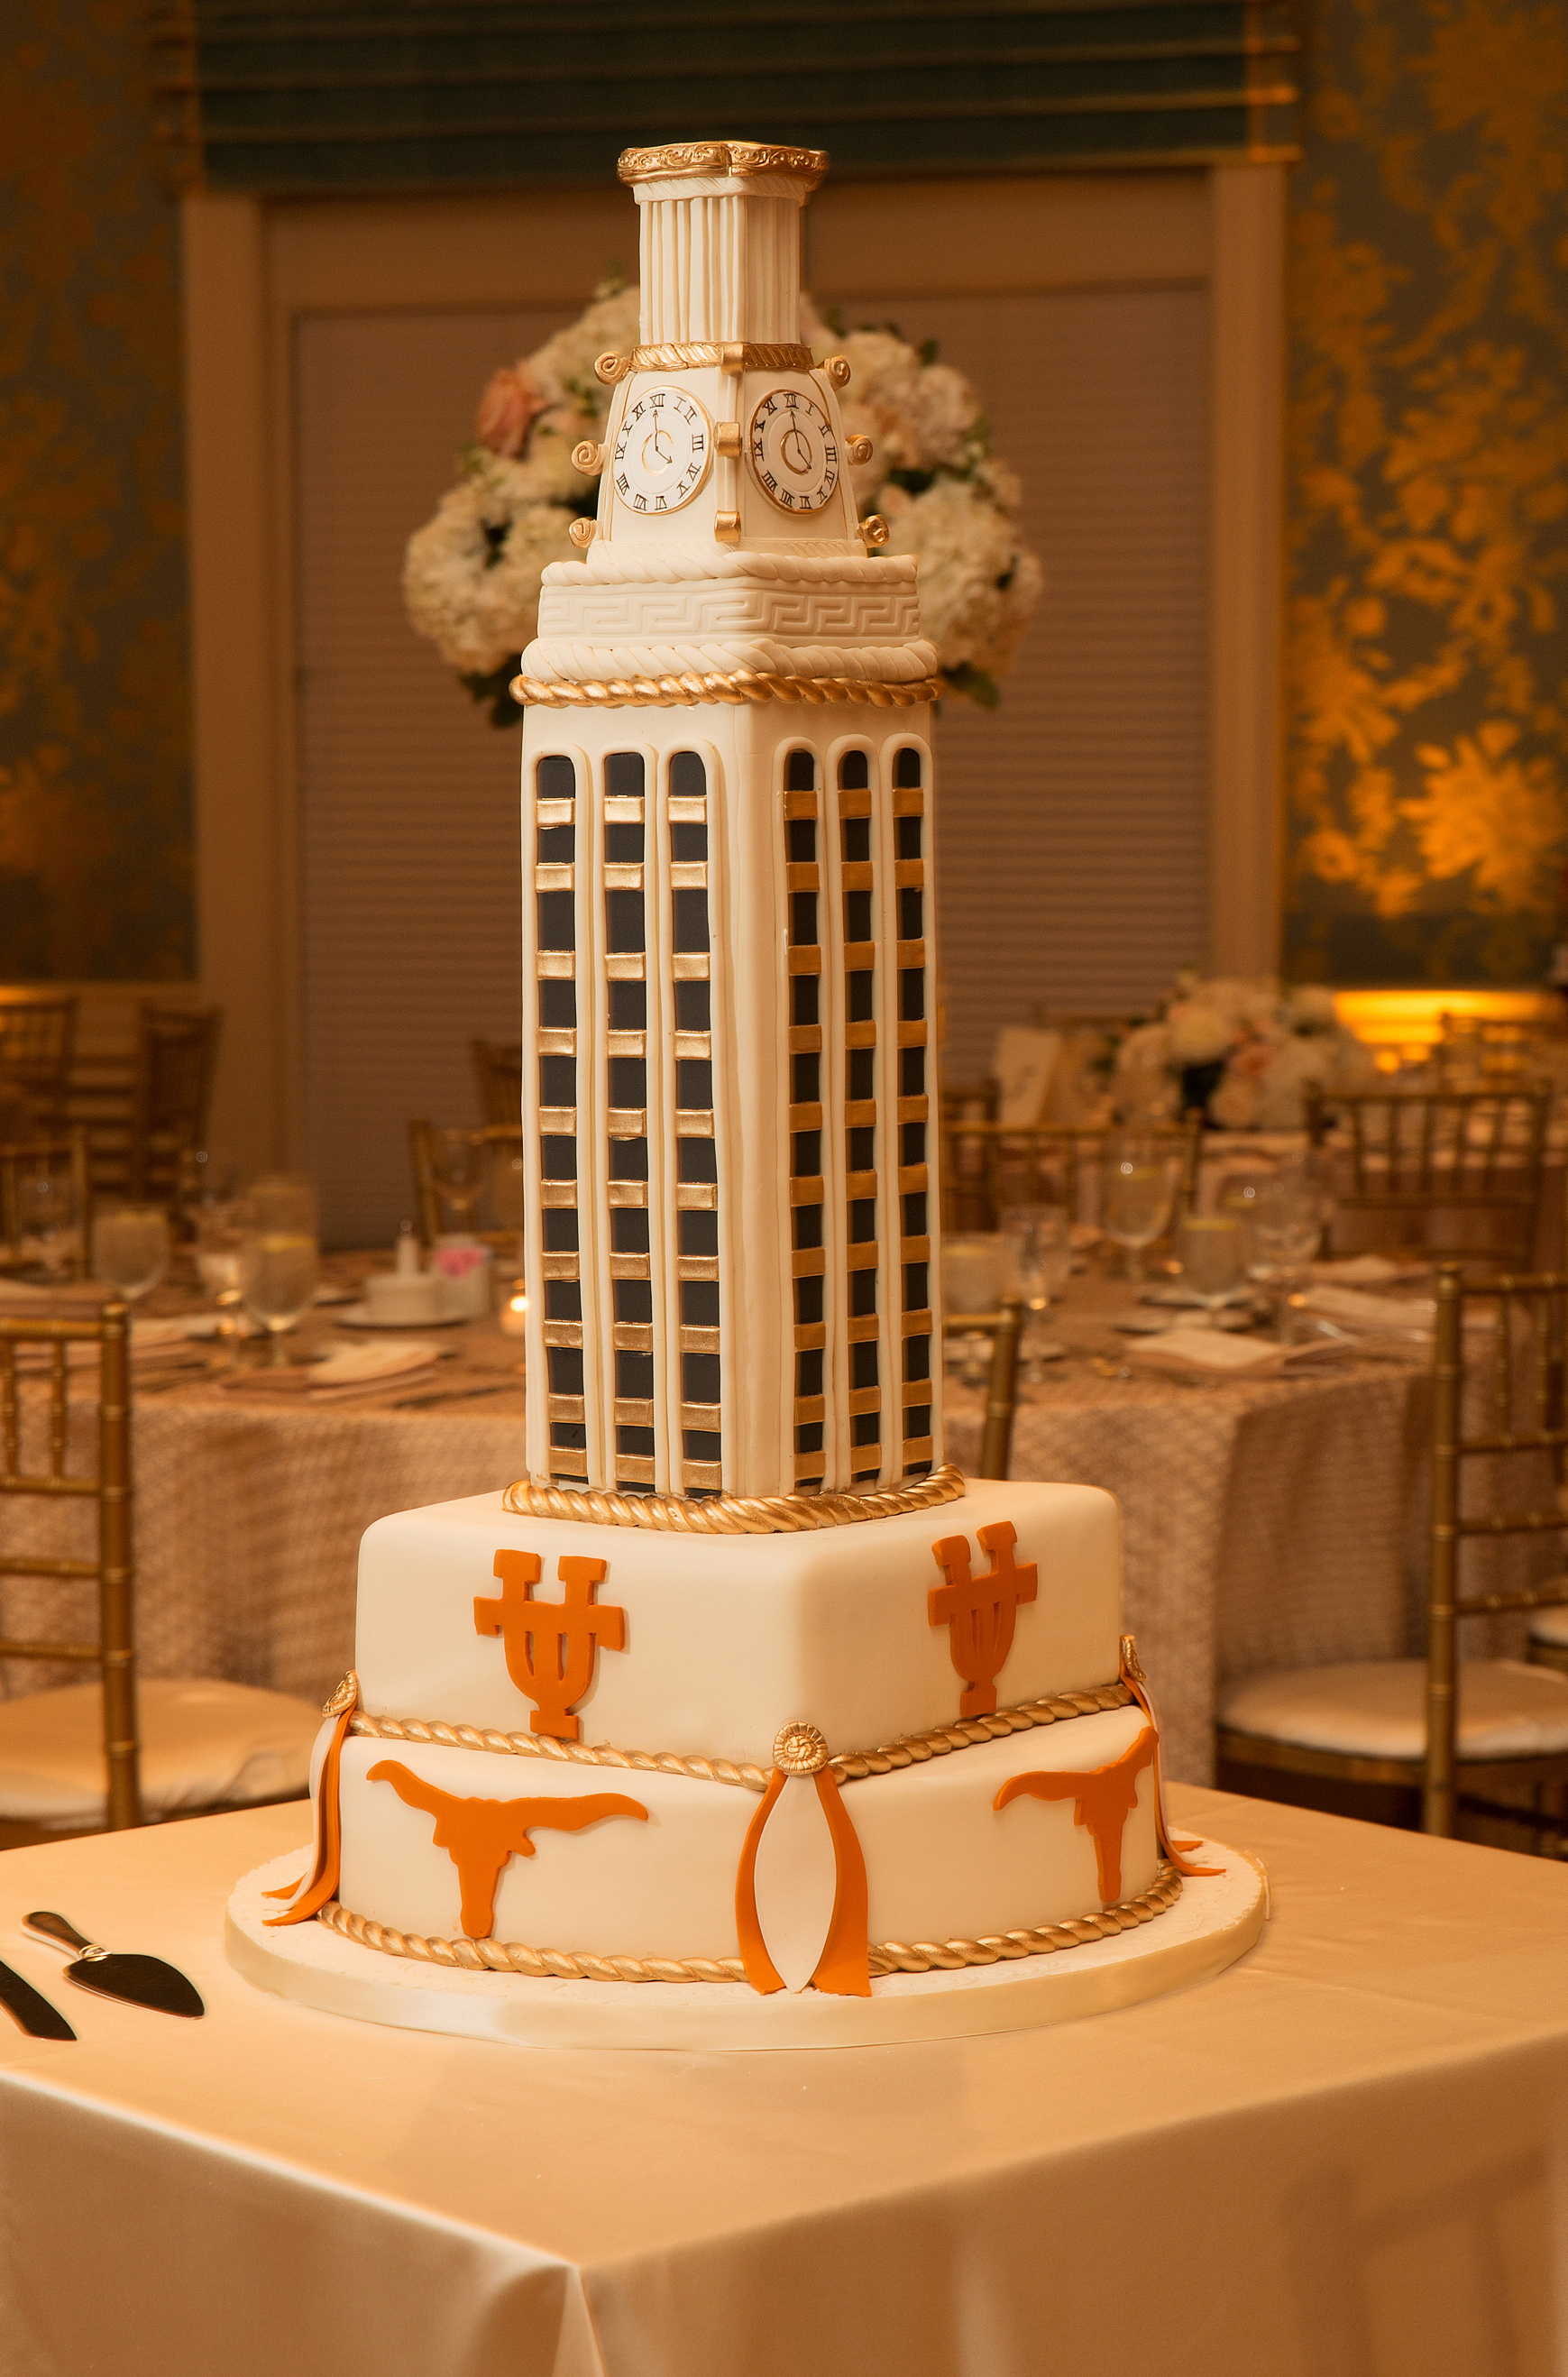 Edible Designs - Houston Wedding Cakes & Desserts